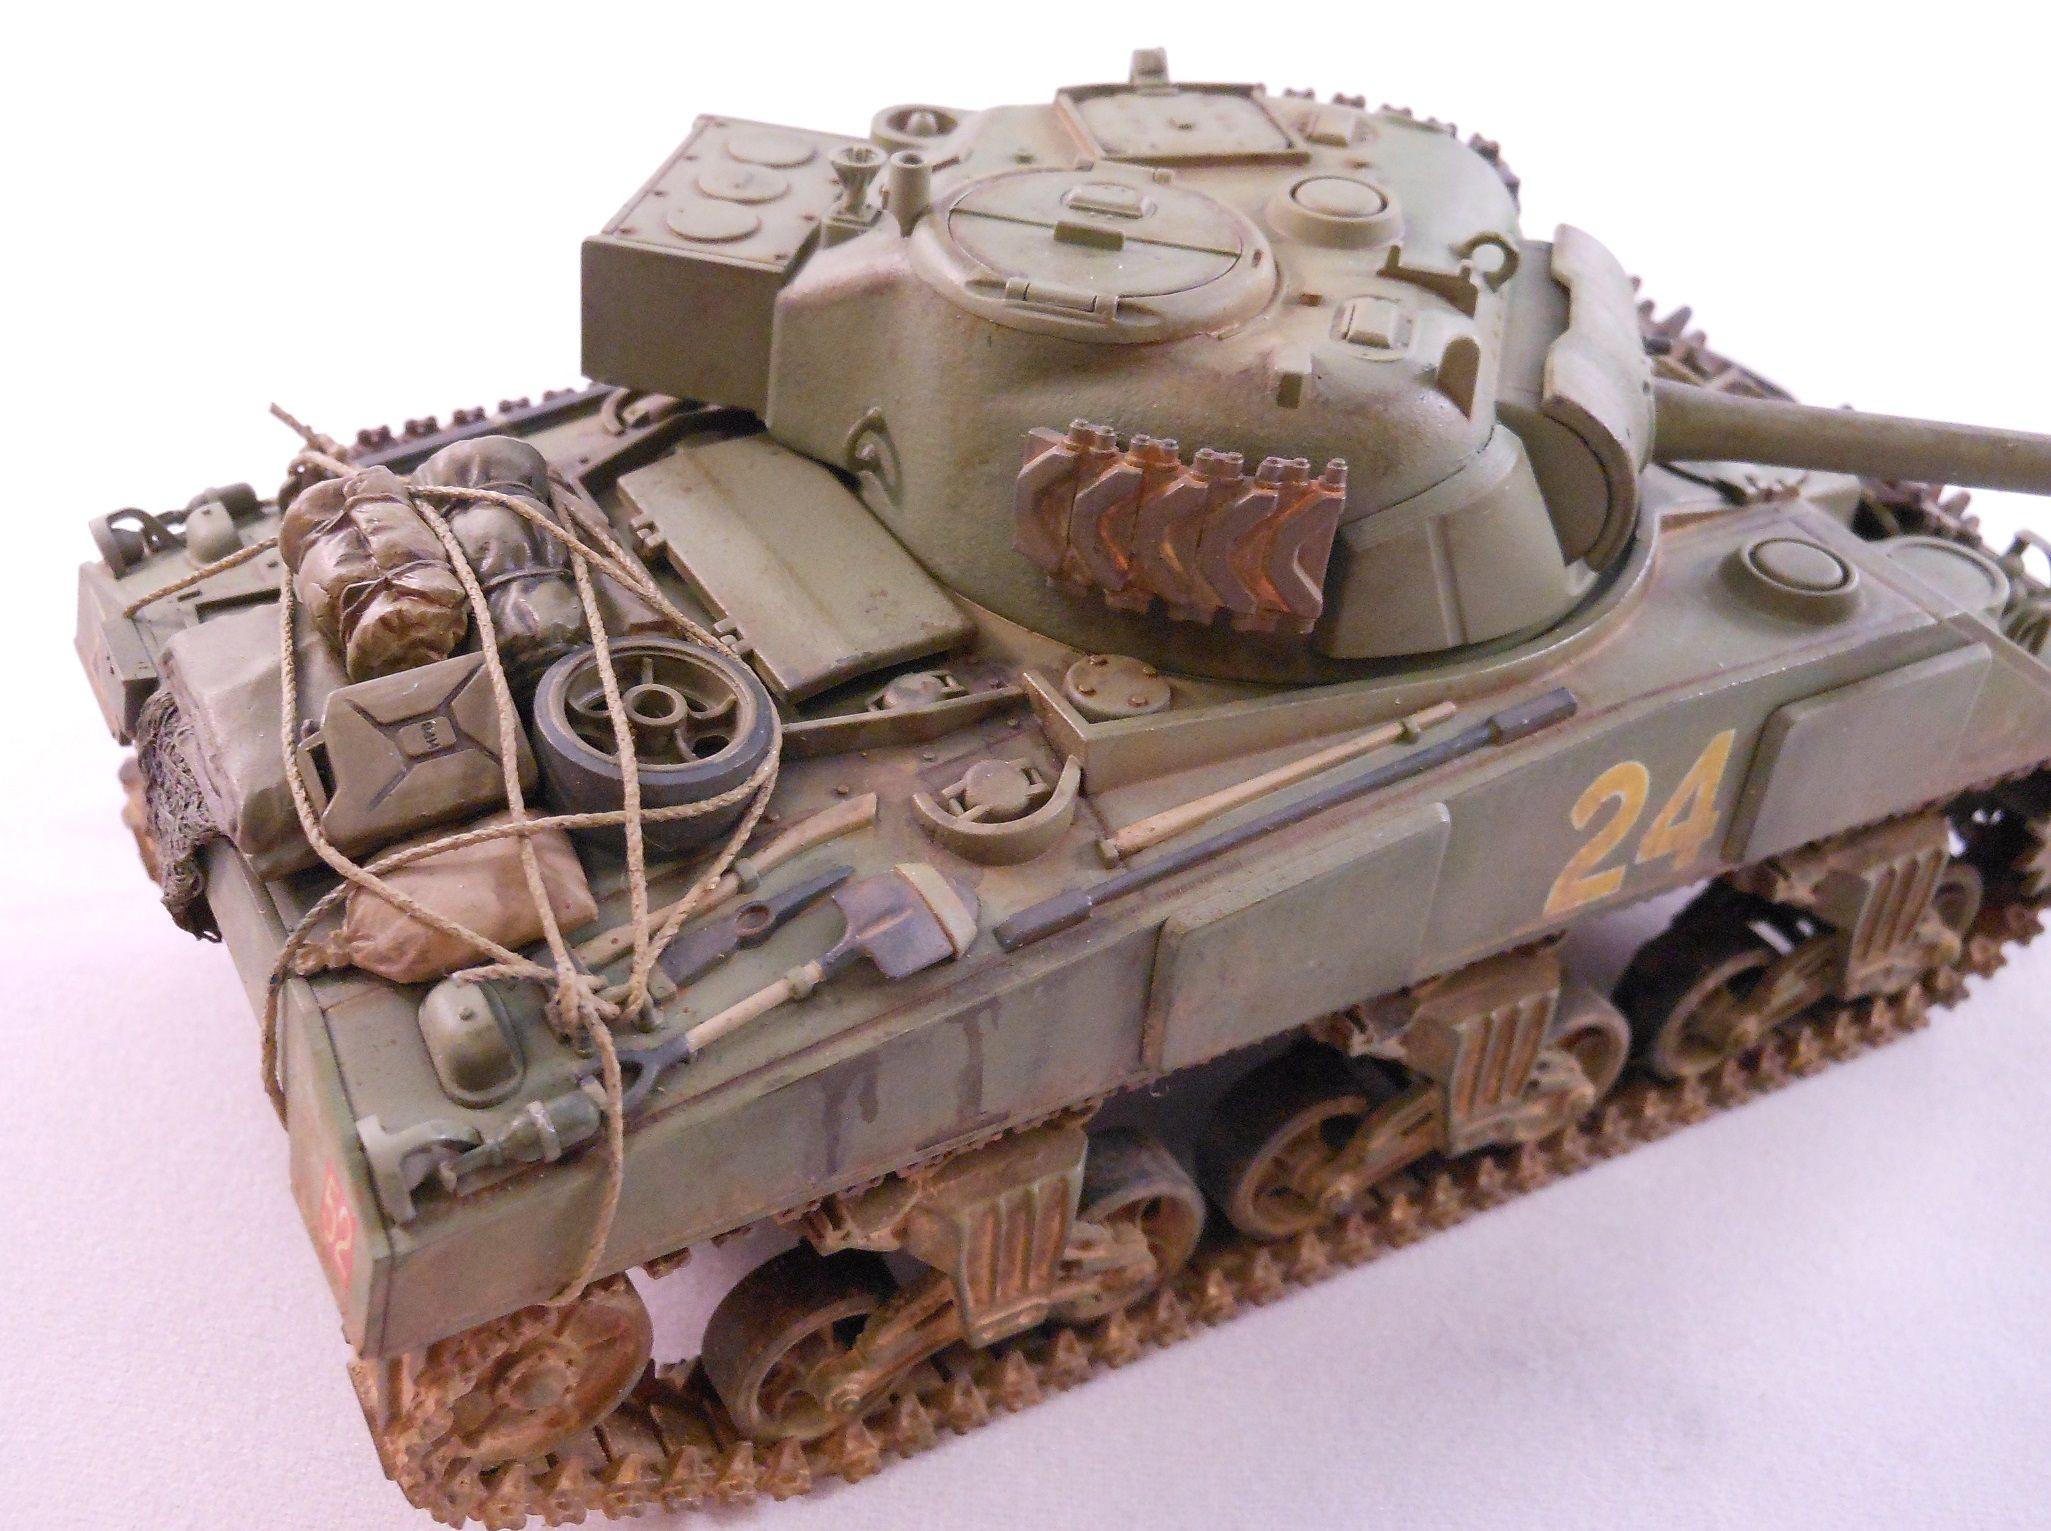 1/48 scale Sherman IC